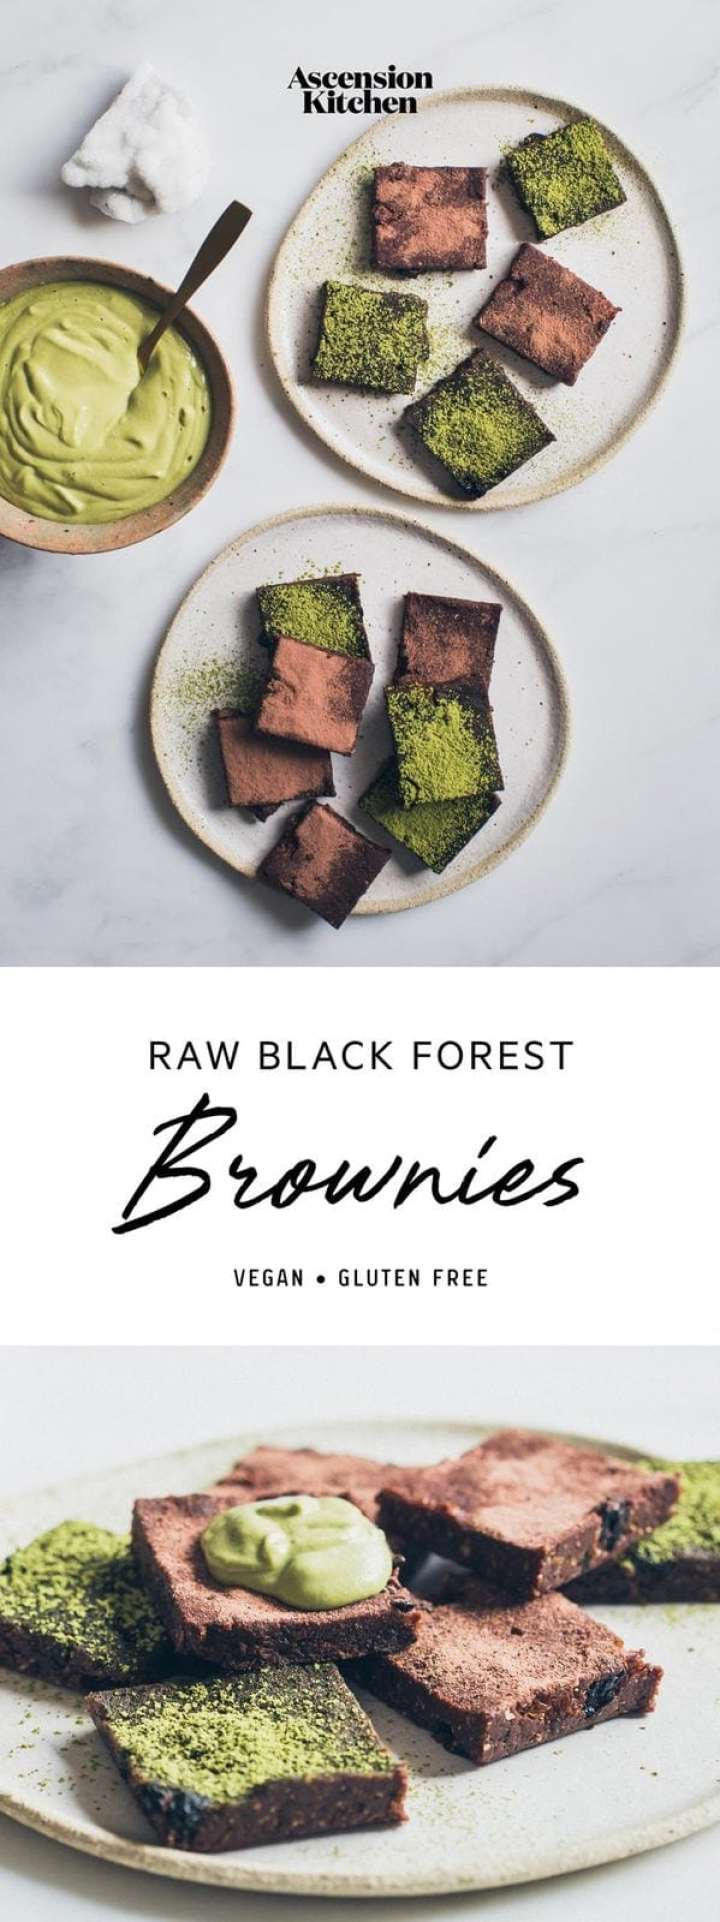 Raw Black Forest Brownies – fudgy vegan brownies, gluten free and totally easy to make. #rawbrownies #rawbrowniesrecipe #rawbrowniesvegan #blackforestbrownies #blackforestbrownieseasy #healthybrownies #glutenfreebrownies #veganbrownies #AscensionKitchen // Pin to your own inspiration board! //